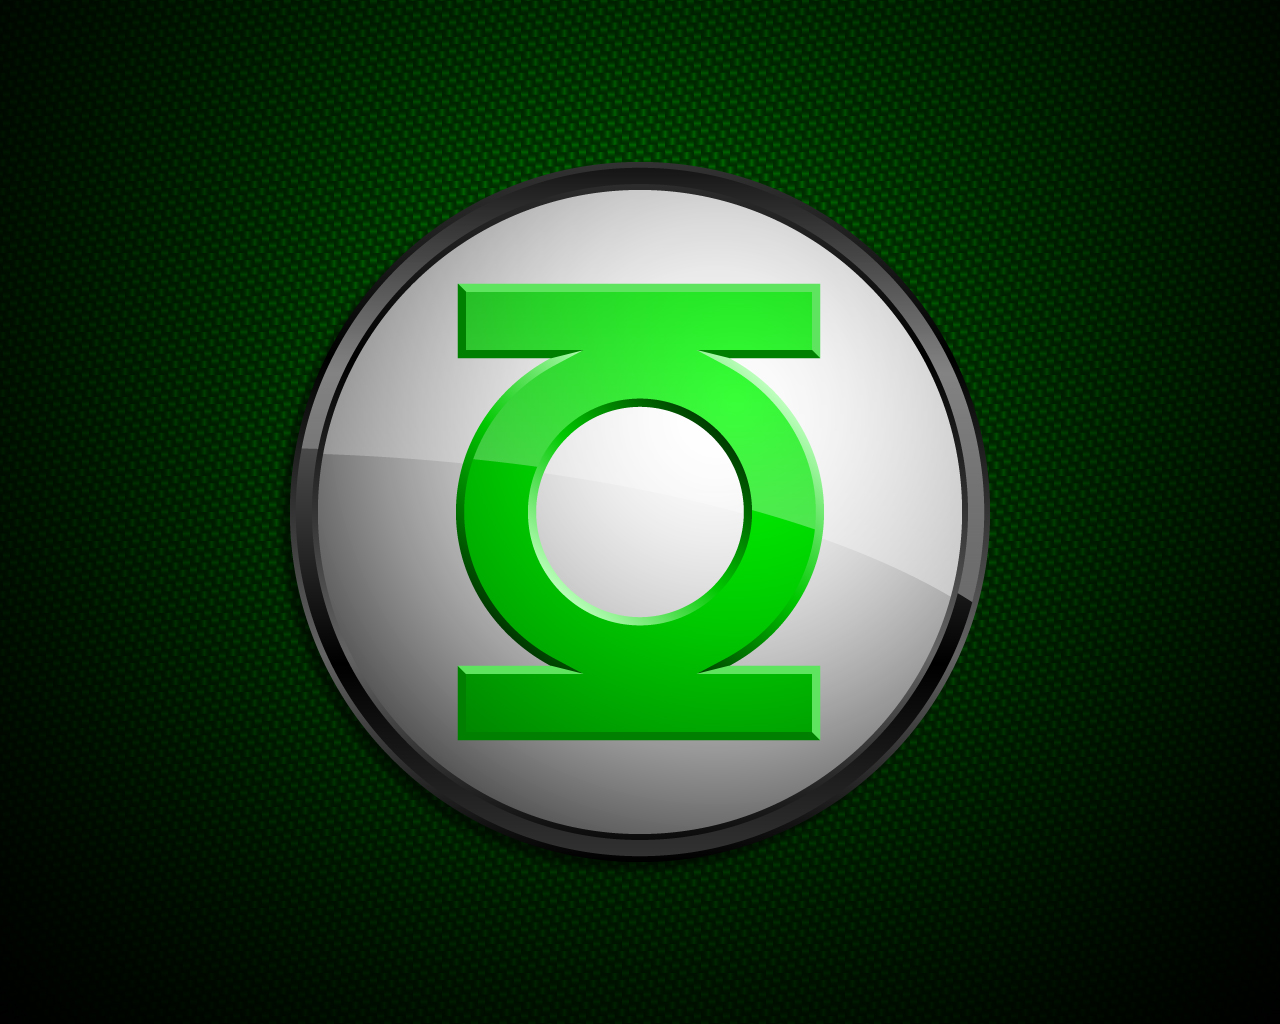 Green Lantern Wallpaper by SpazChicken 1280x1024